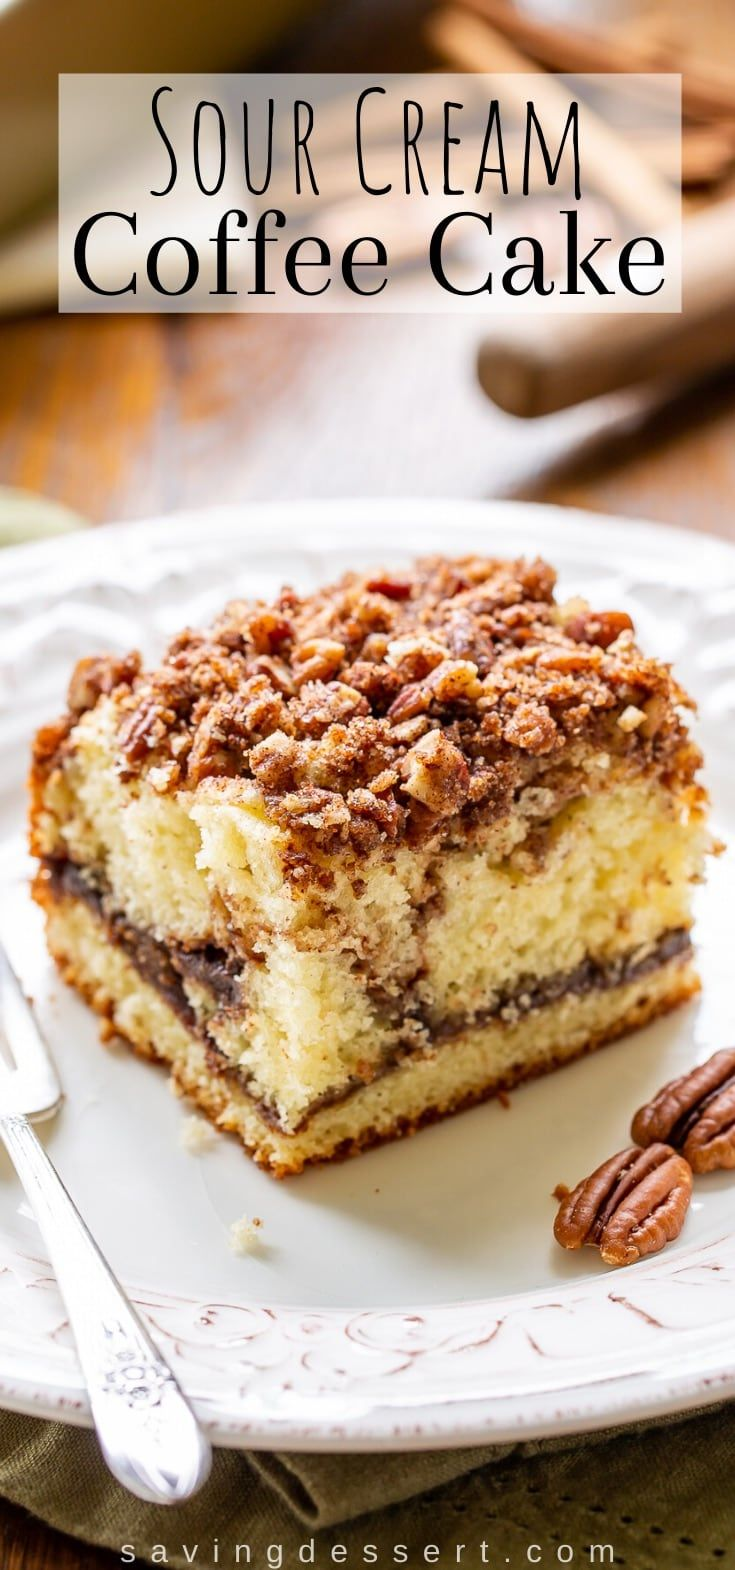 Sour Cream Coffee Cake Recipe In 2020 Sour Cream Coffee Cake Coffee Cake Coffee Cake Recipes